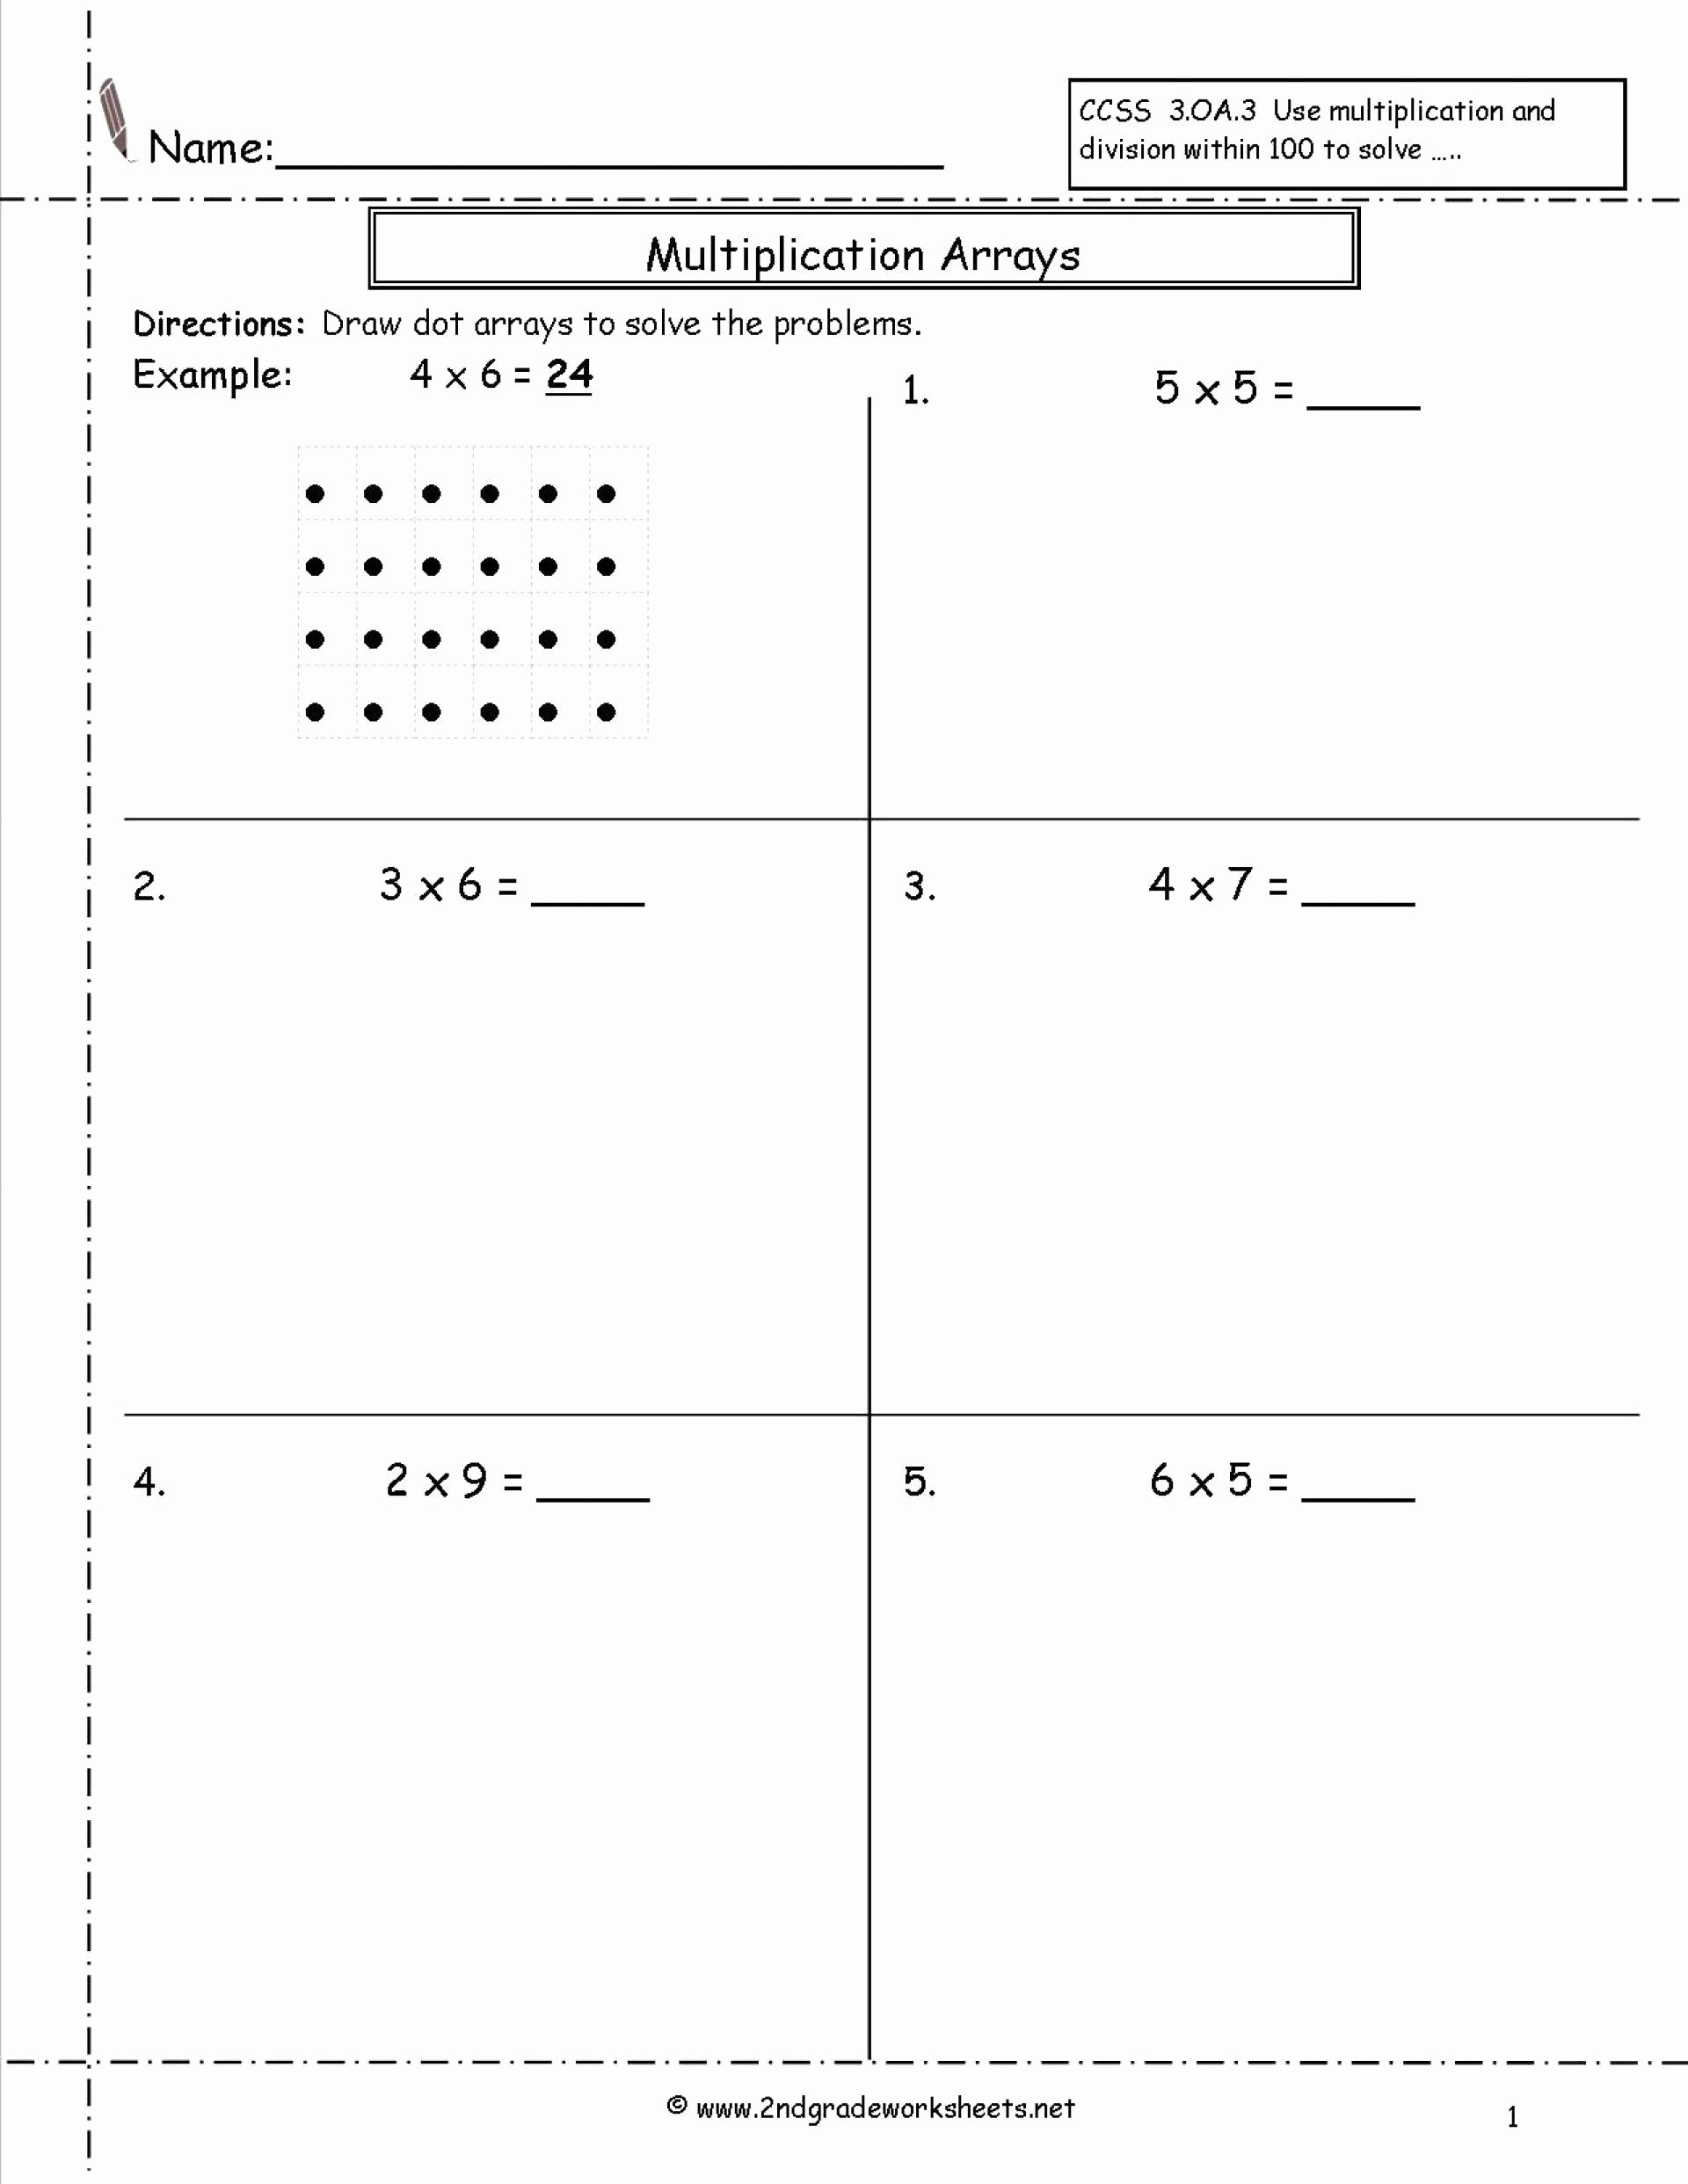 Array Multiplication Worksheets Best Of Pin On Math Worksheets